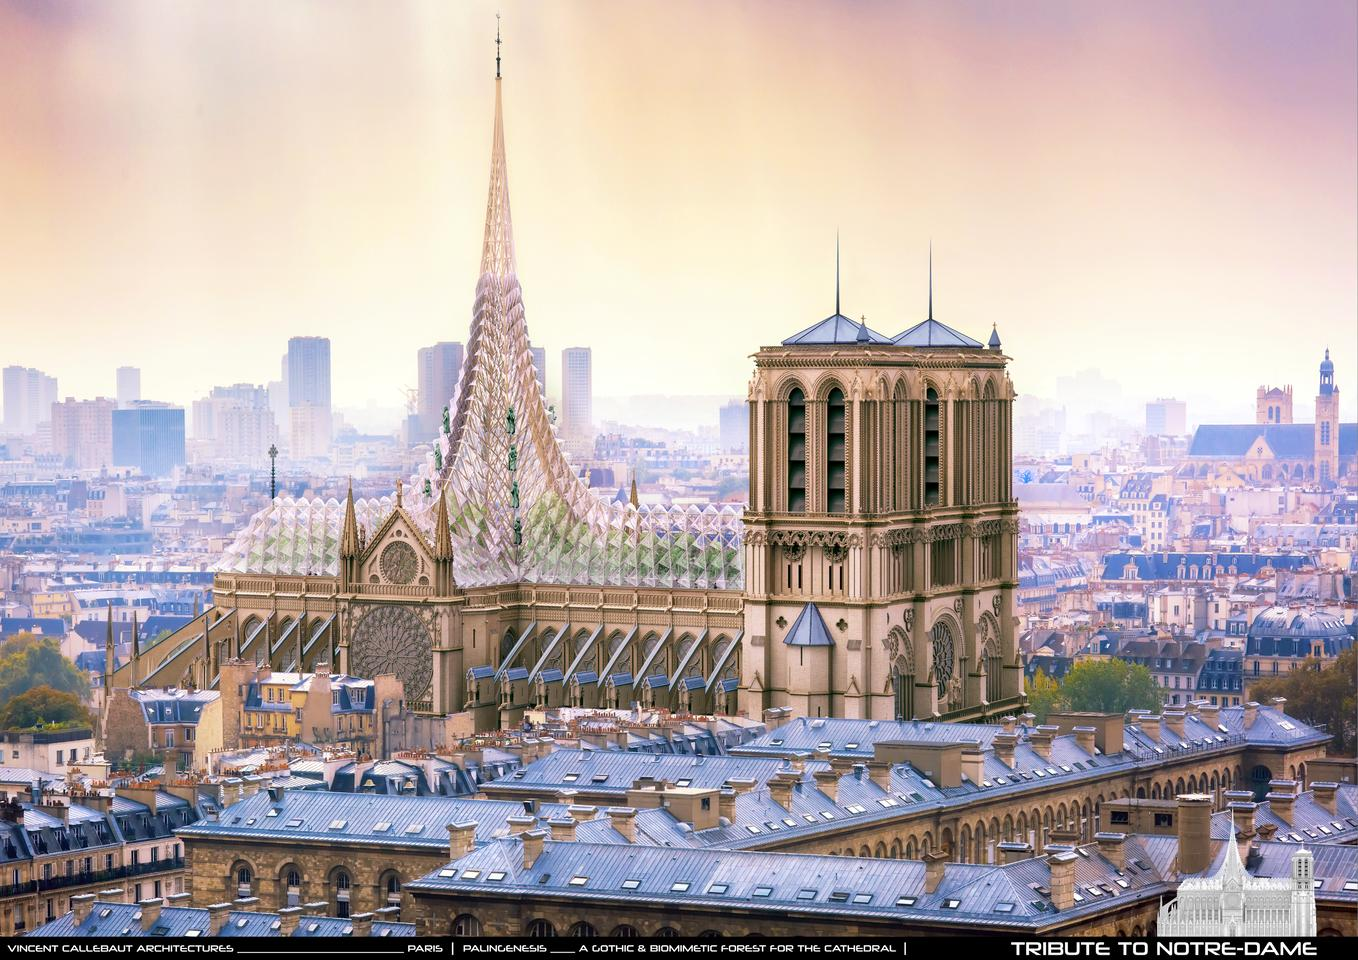 Following the devastating fire that recently damaged the Notre-Dame cathedral in Paris, local firm Vincent Callebaut Architectures has unveiled its vision for its restoration